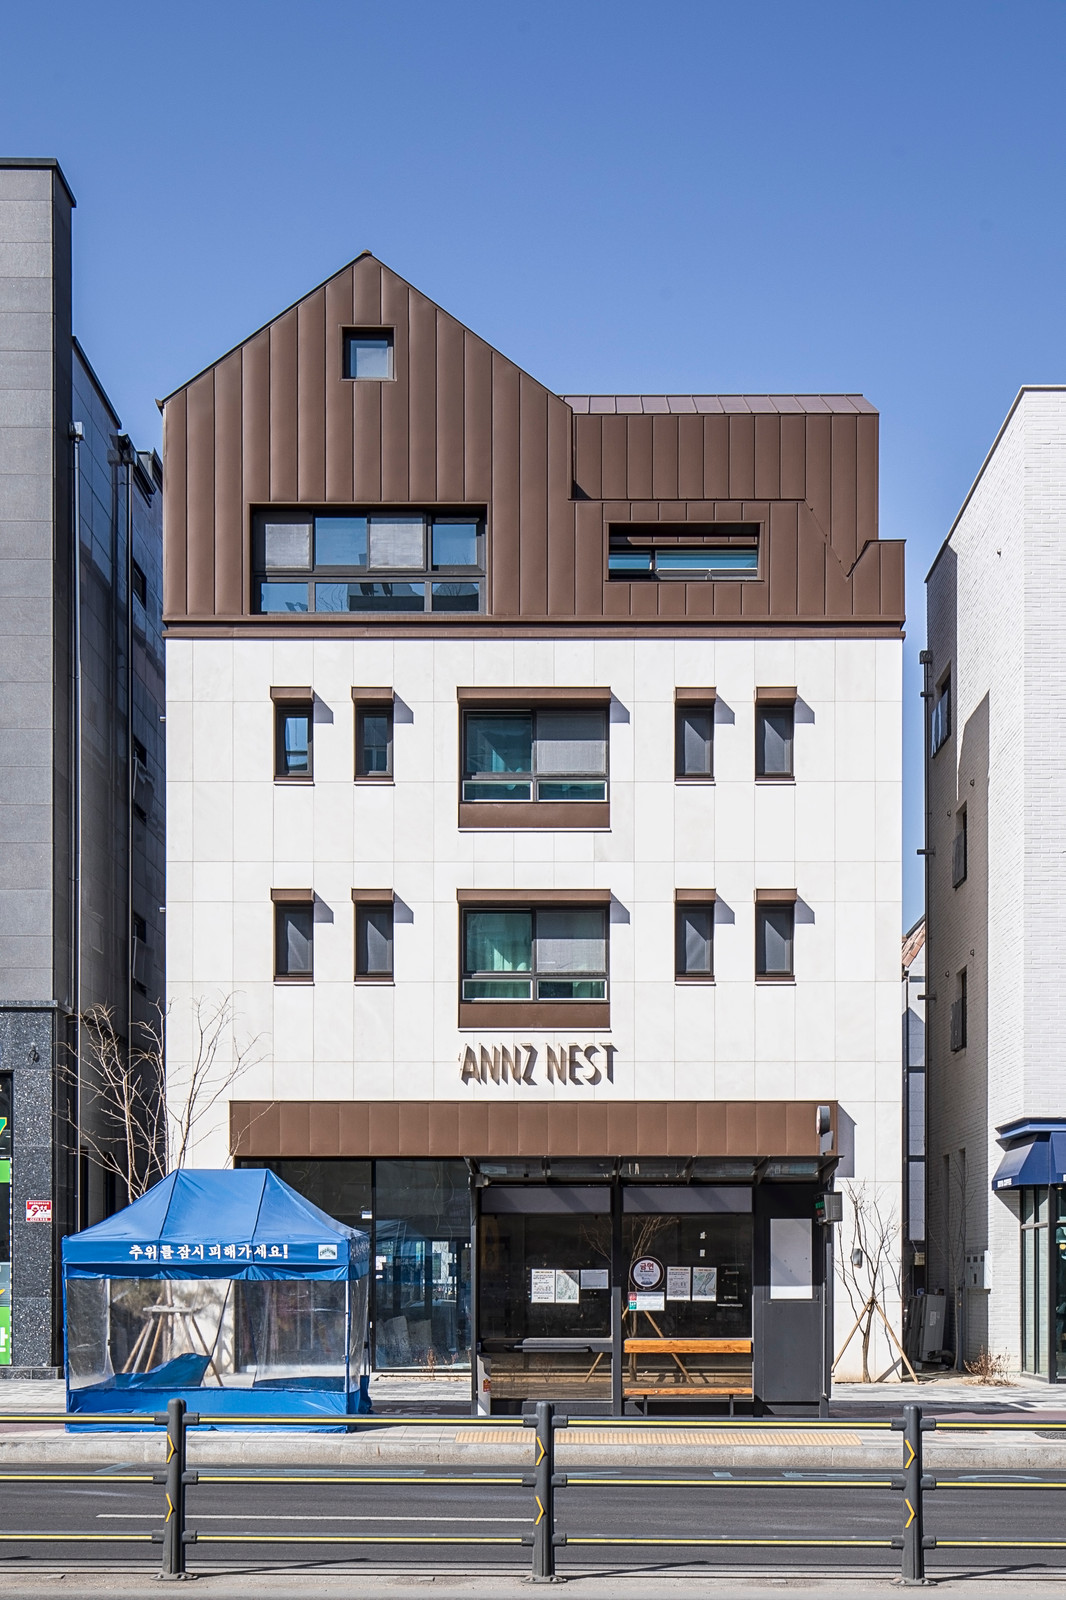 Completion of 'ANNZ NEST' Construction